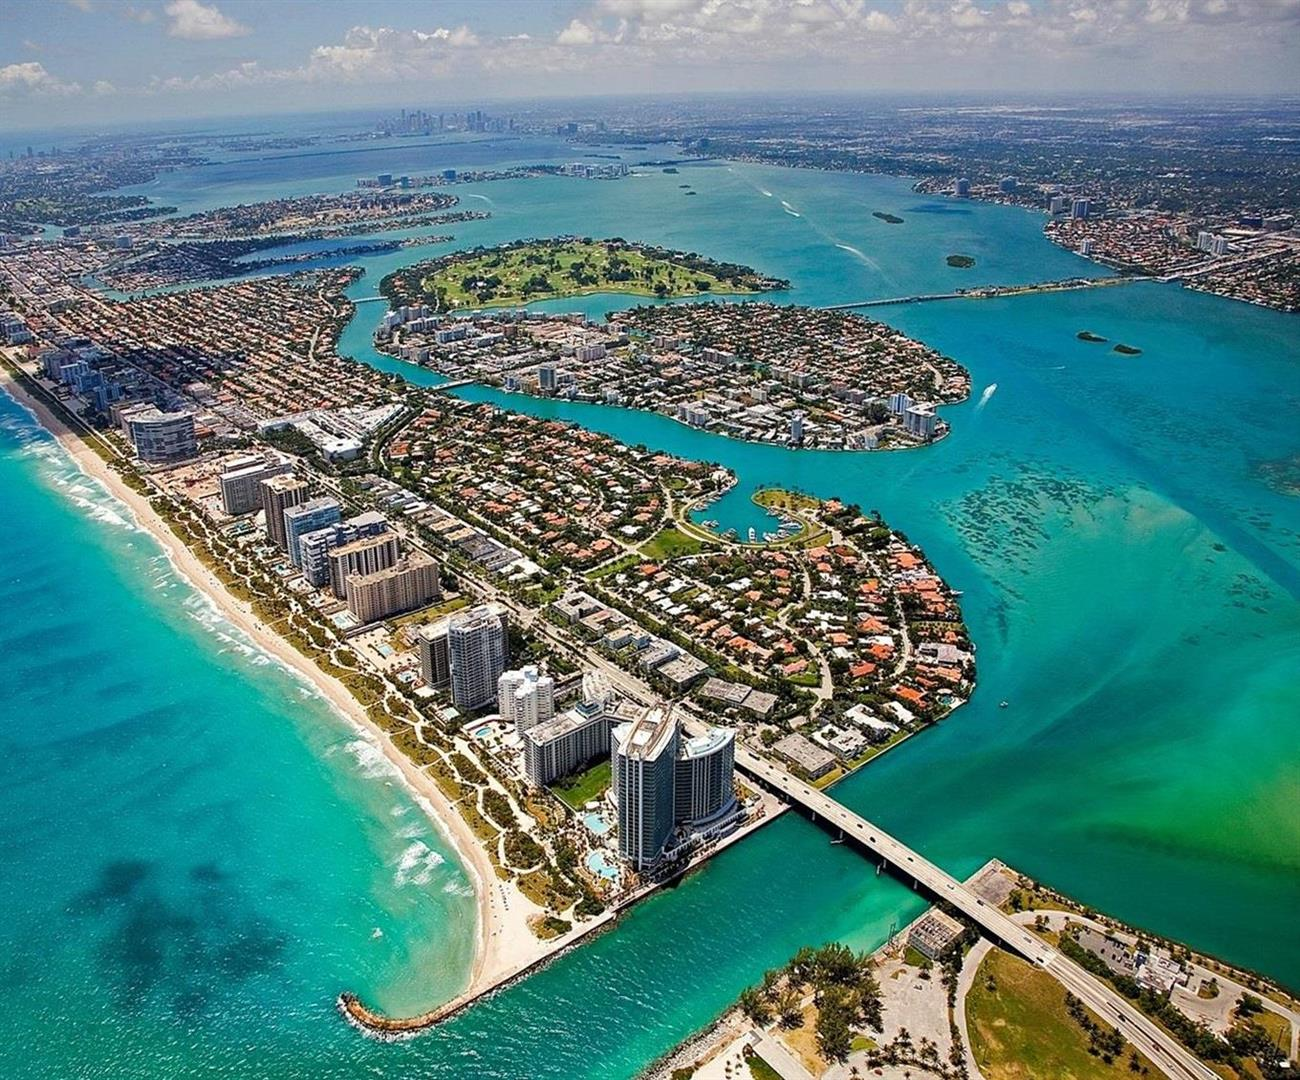 AirViewBalHarbourFlorida.jpg